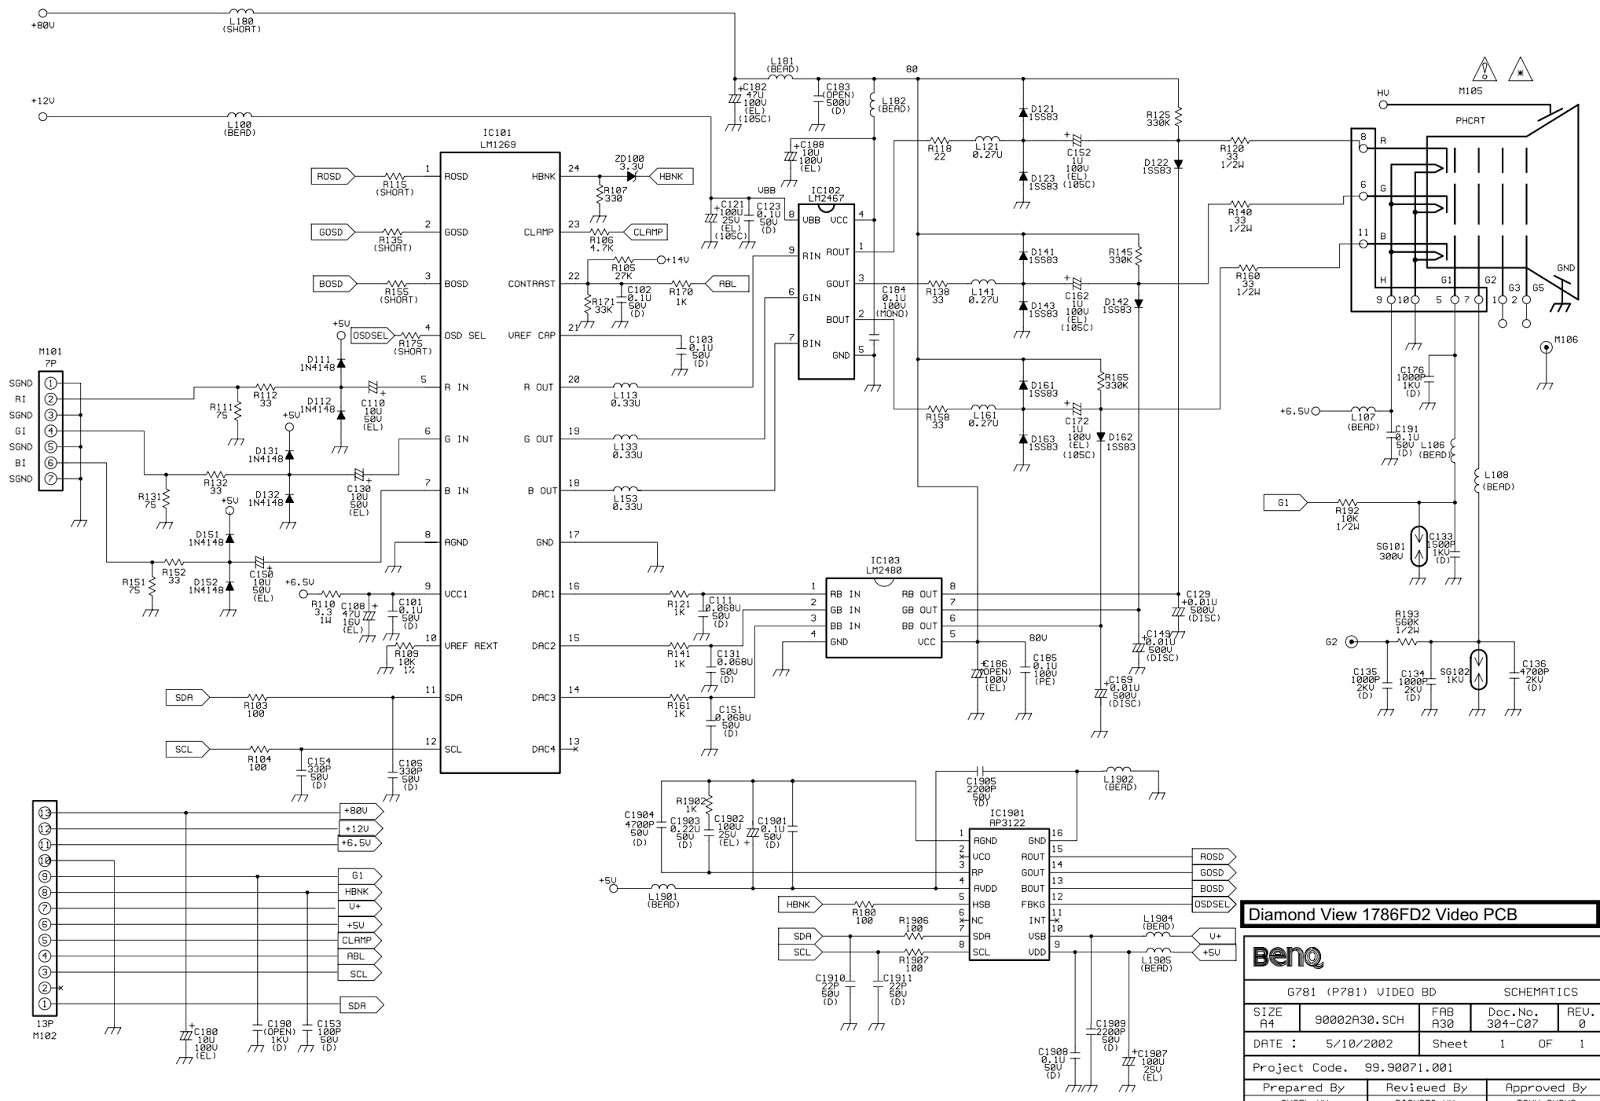 benq wiring diagram motorcycle schematic images of benq wiring diagram benq mitsubishi 1786fd2 diamond view crt monitor circuit benq